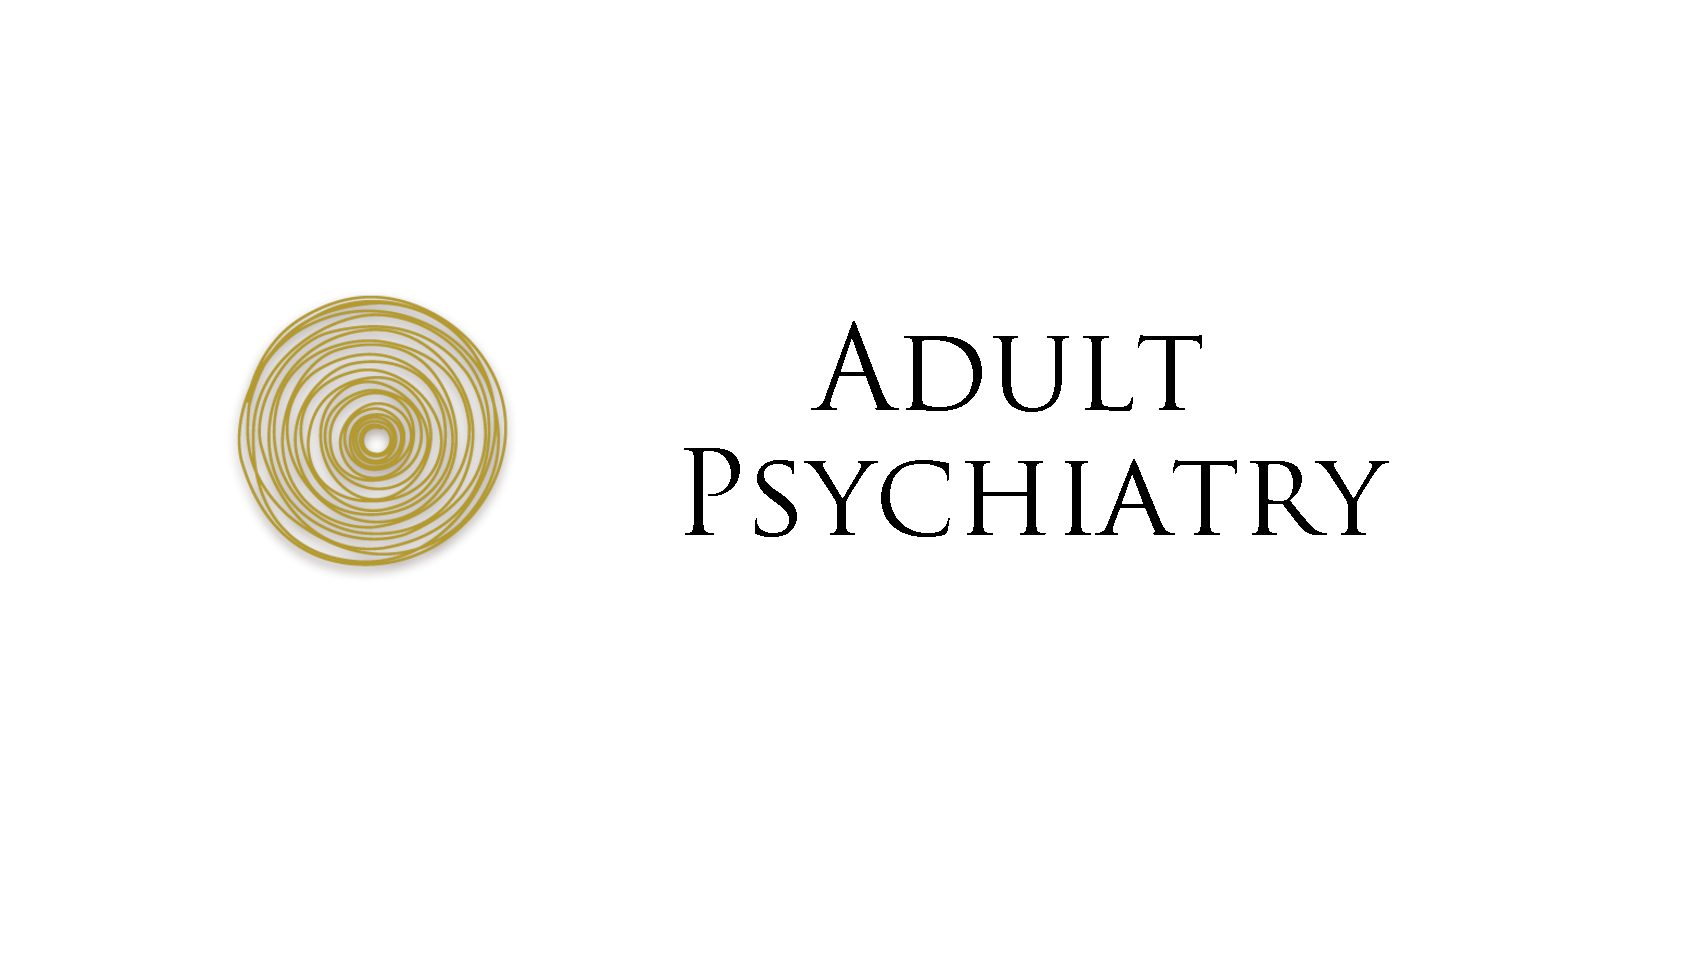 Adult Psychiatry